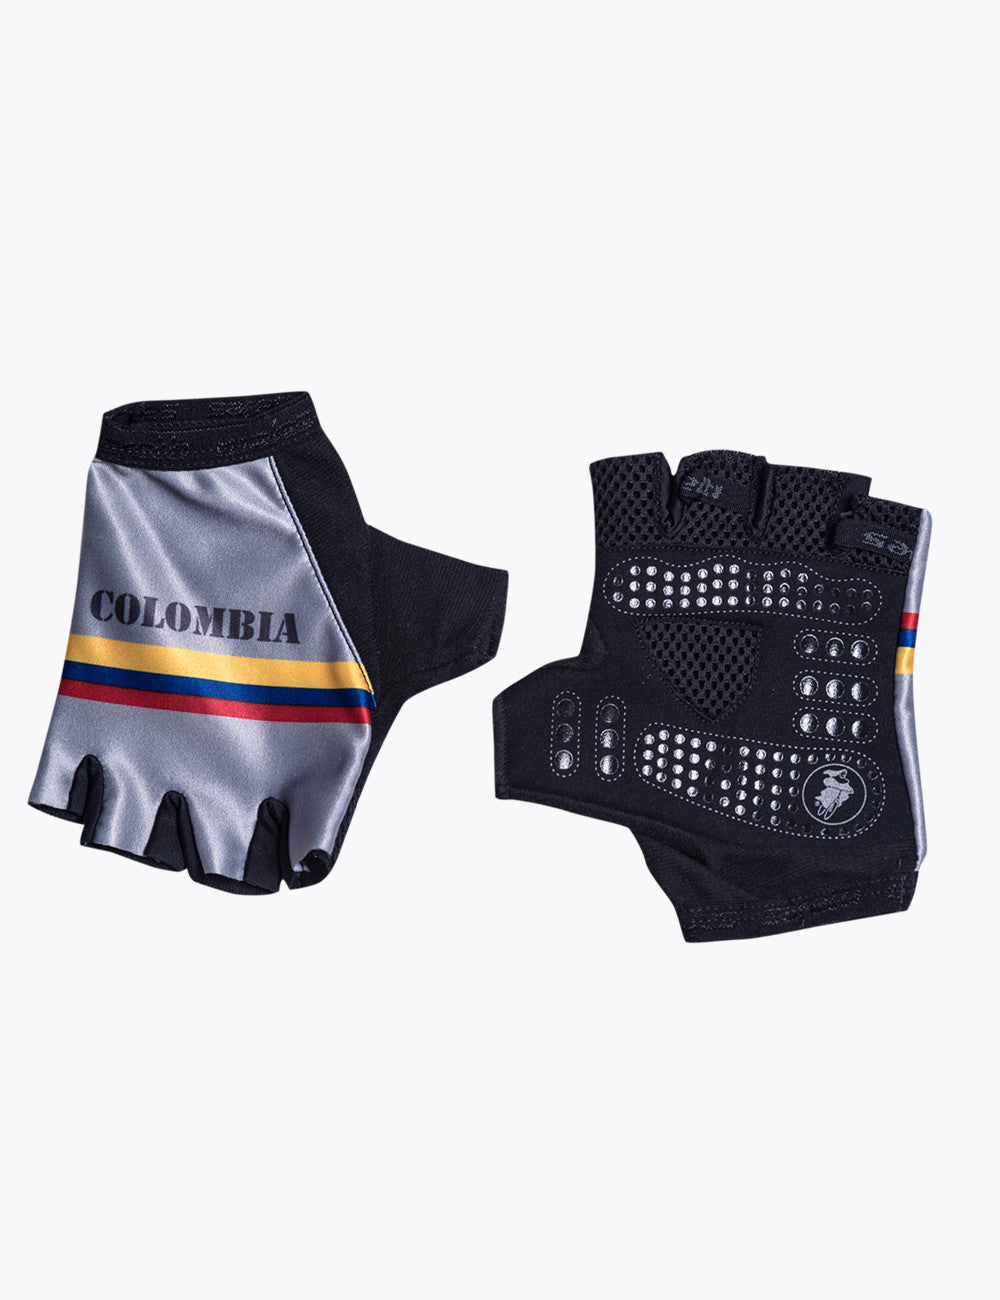 ES'17 - Colombia - Cycling Gloves. Women